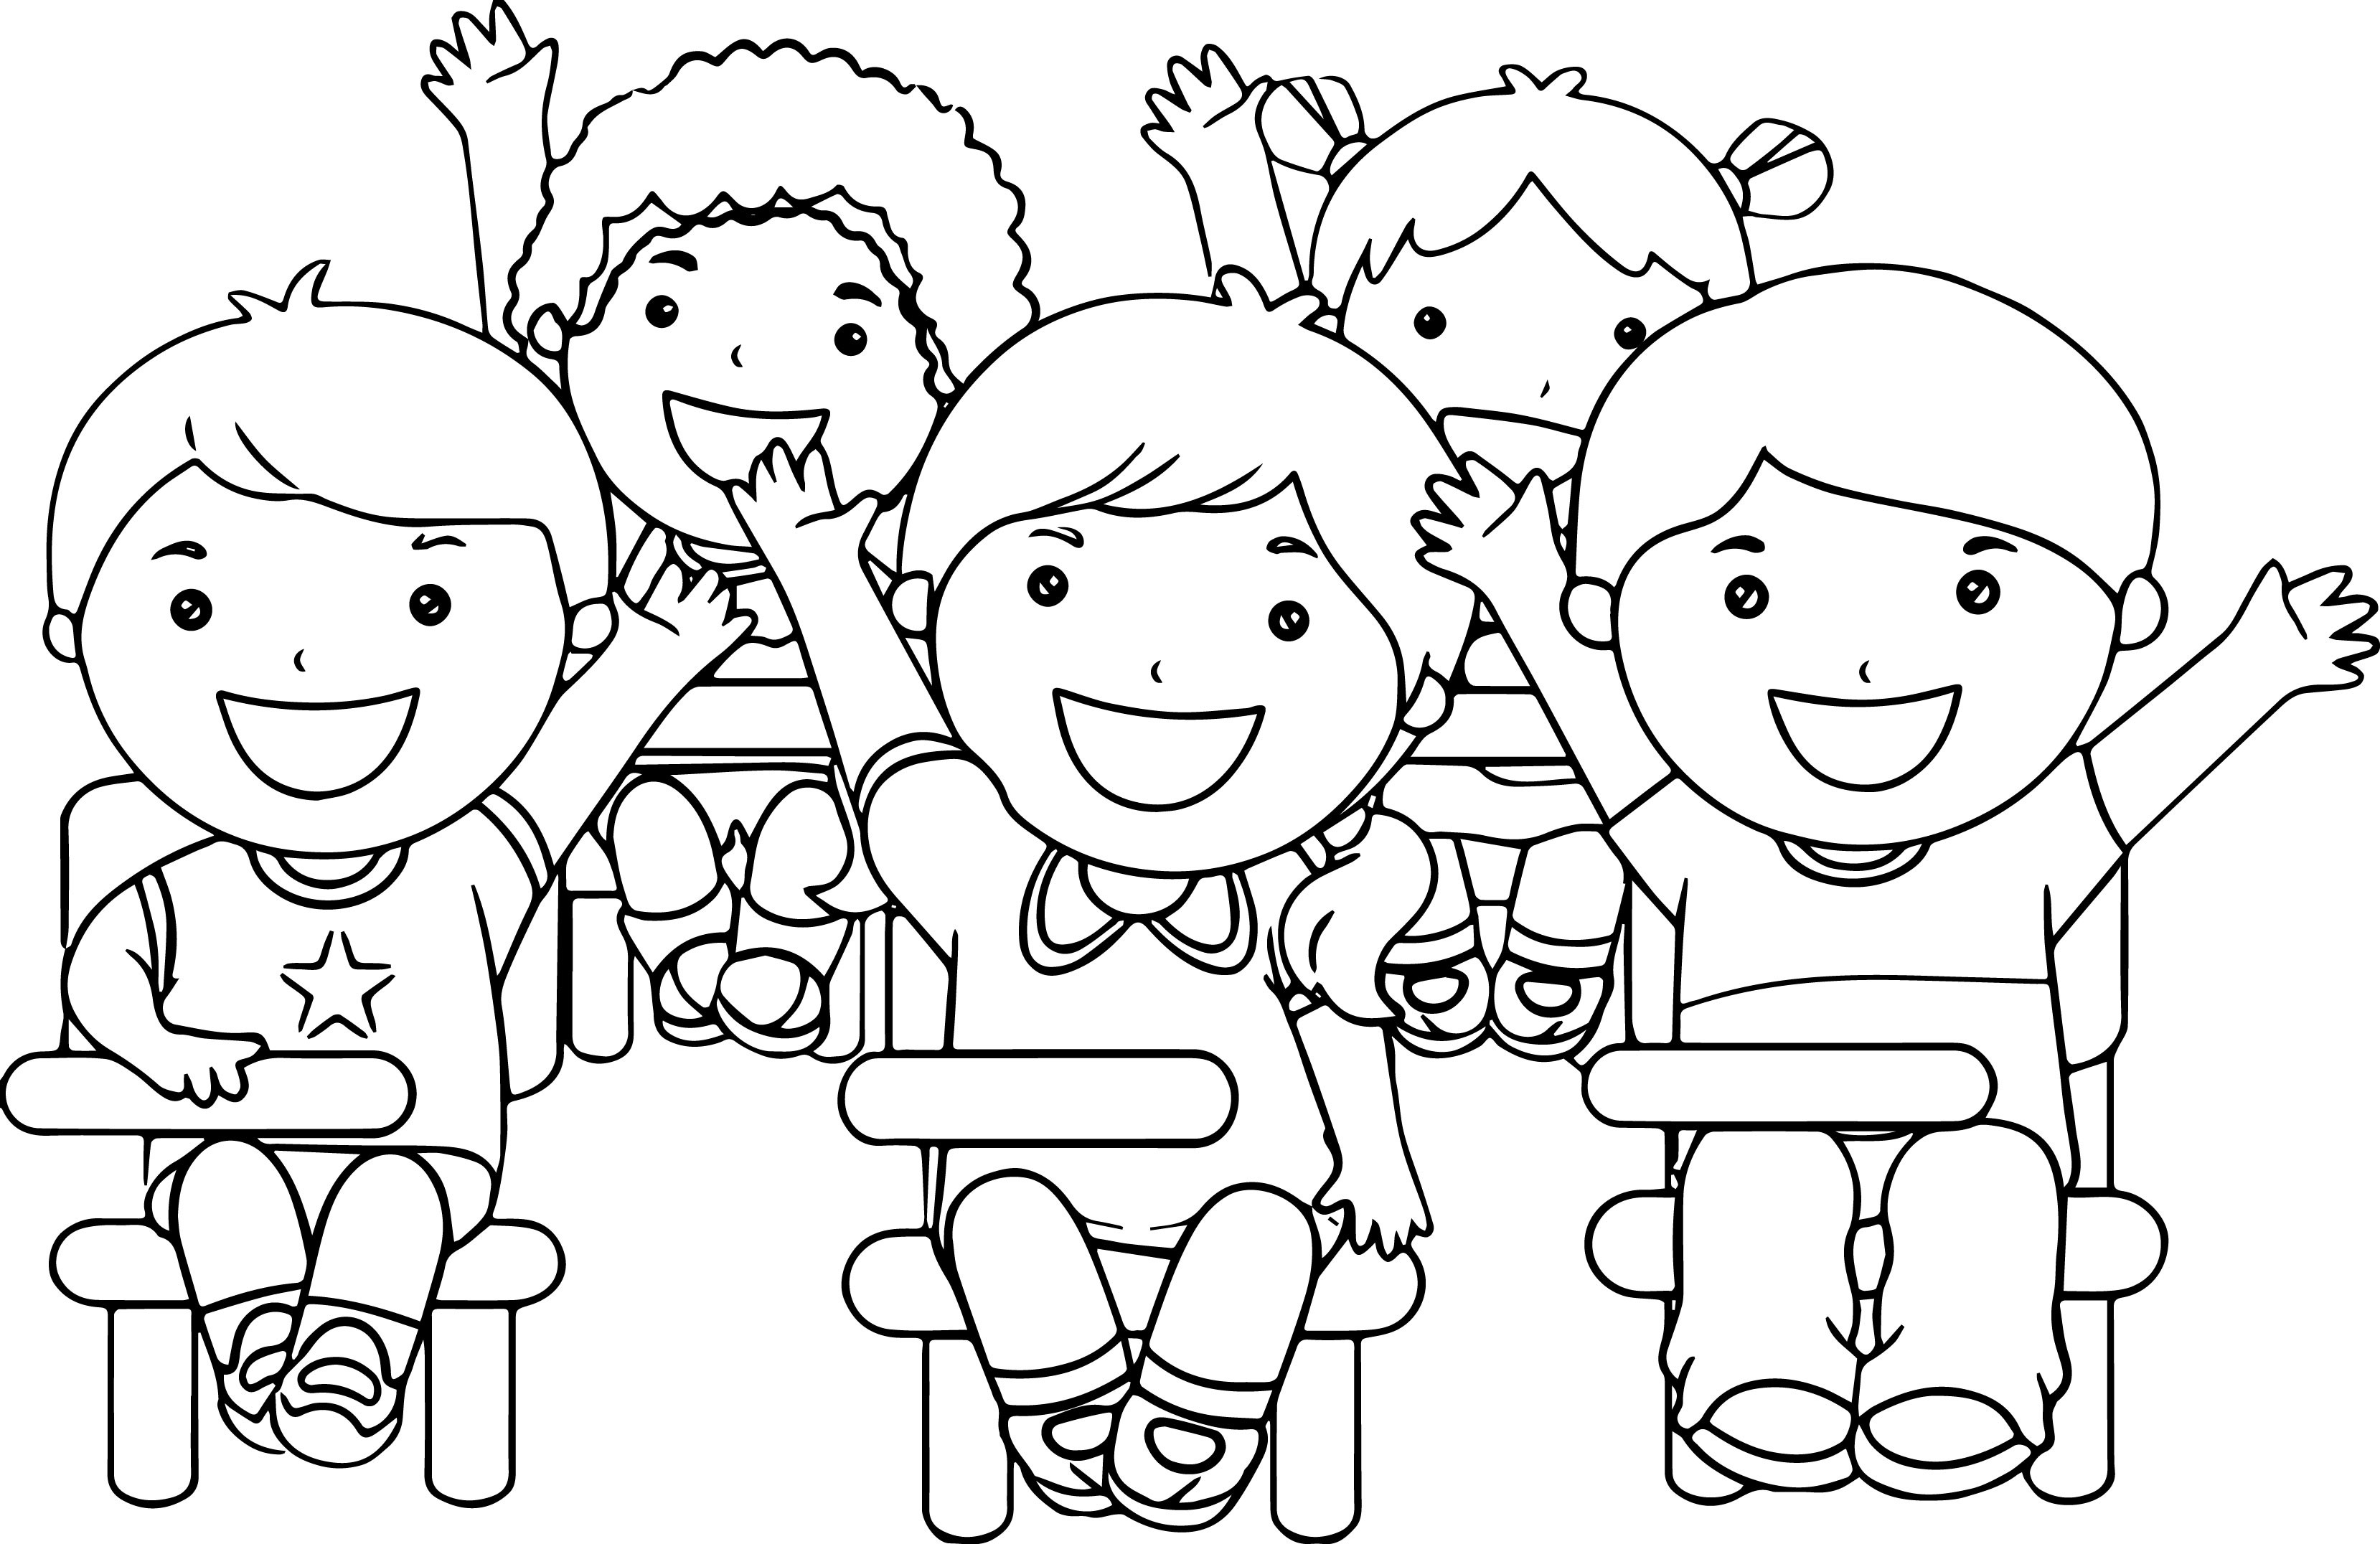 Coloring Sheets For Kids School Time  School Coloring Pages coloringsuite